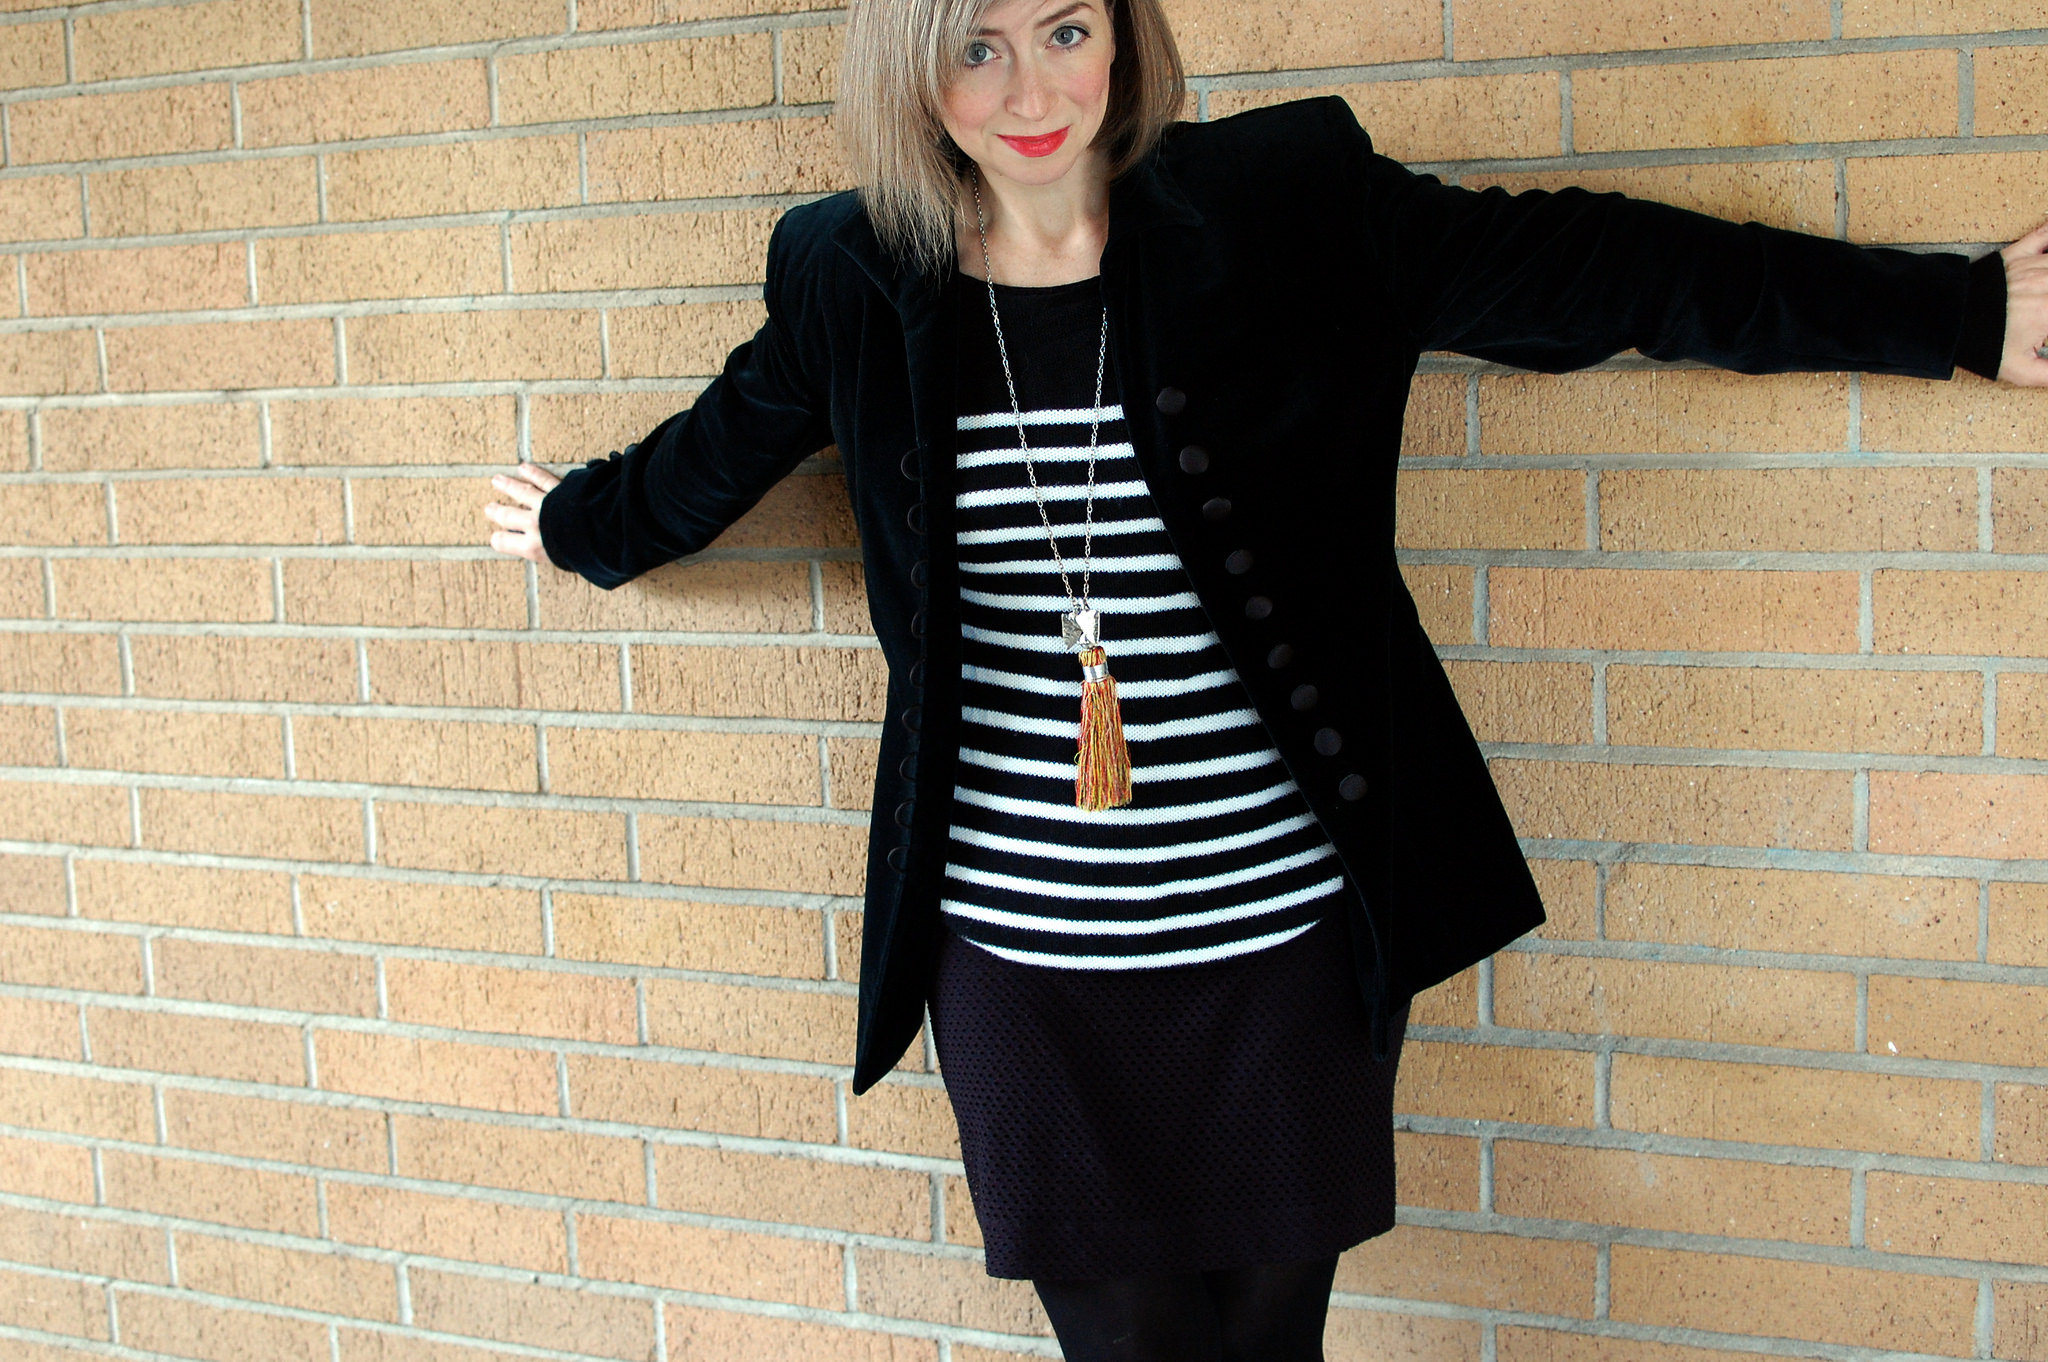 velvet blazer black white striped sweater daily outfit blog ootd whatiwore2day